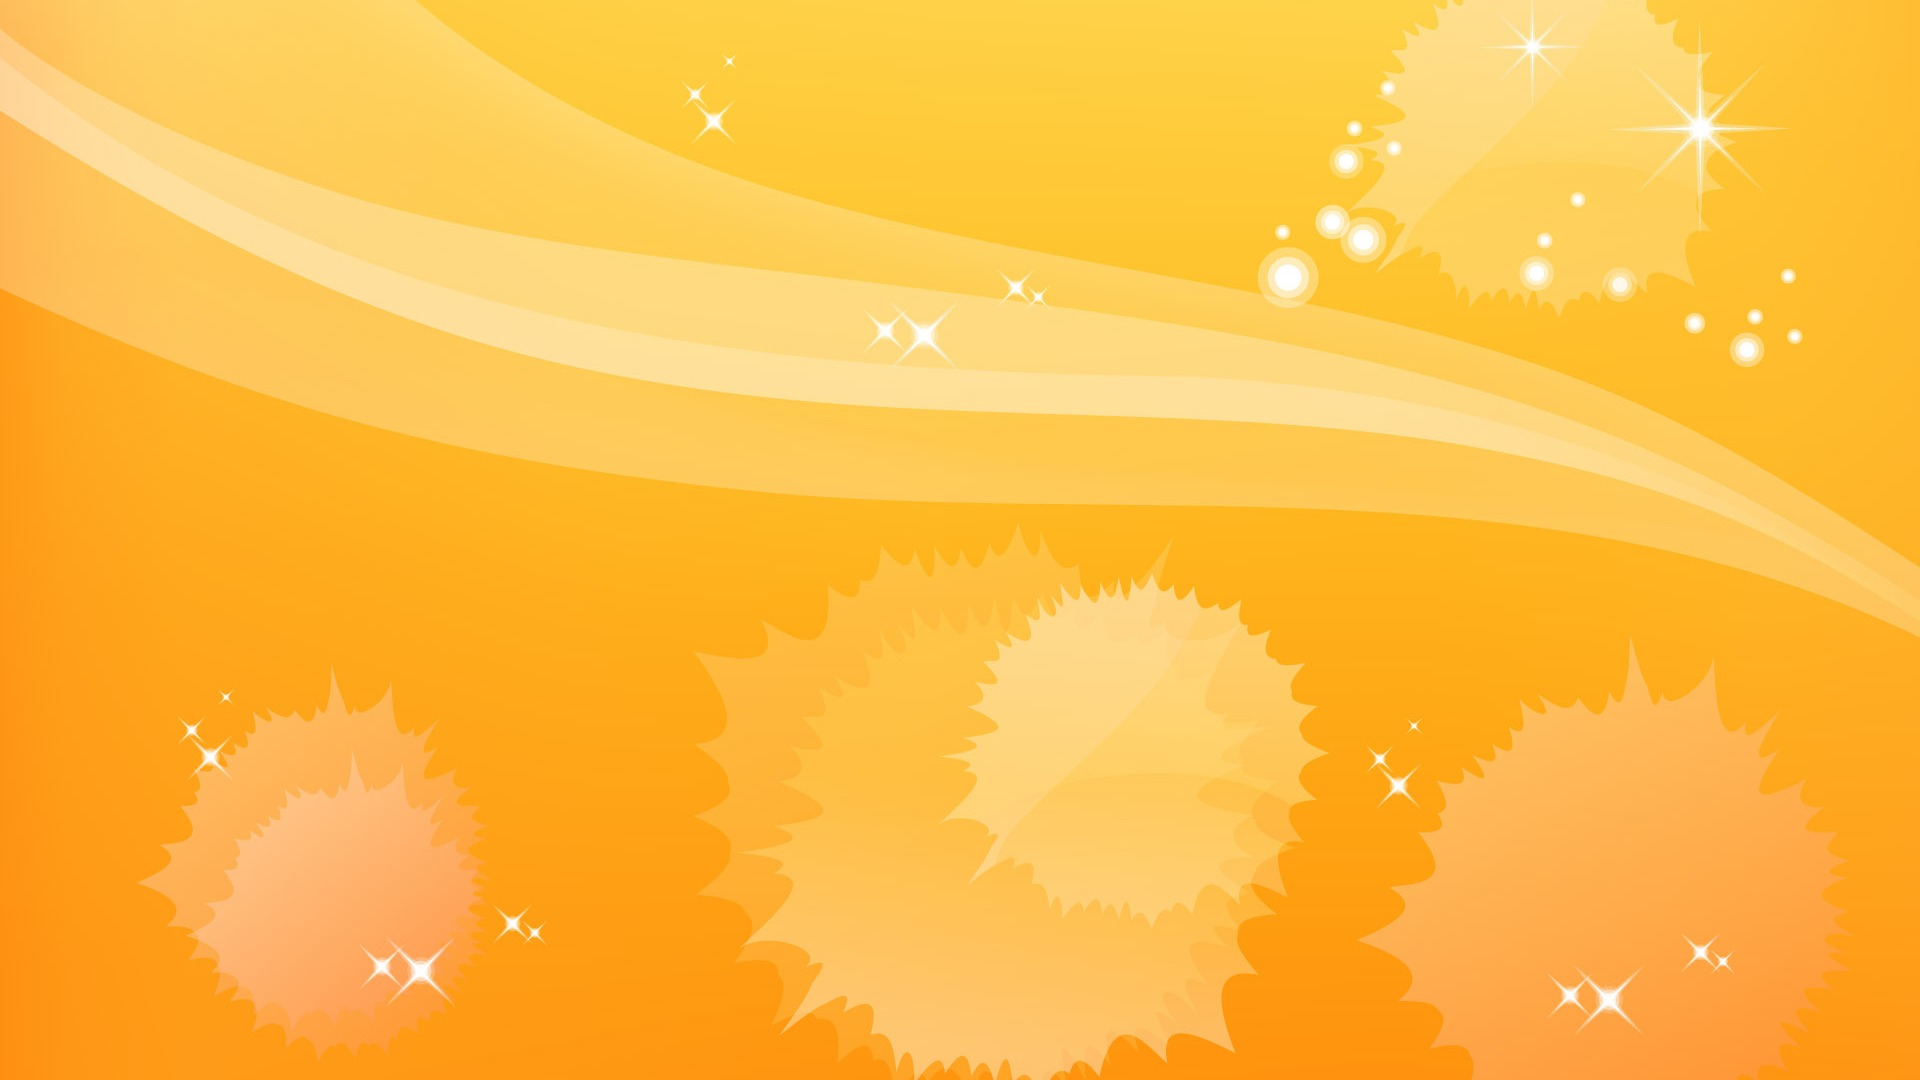 Colorful vector background wallpaper 2 12 1920x1080 for Different wallpaper designs